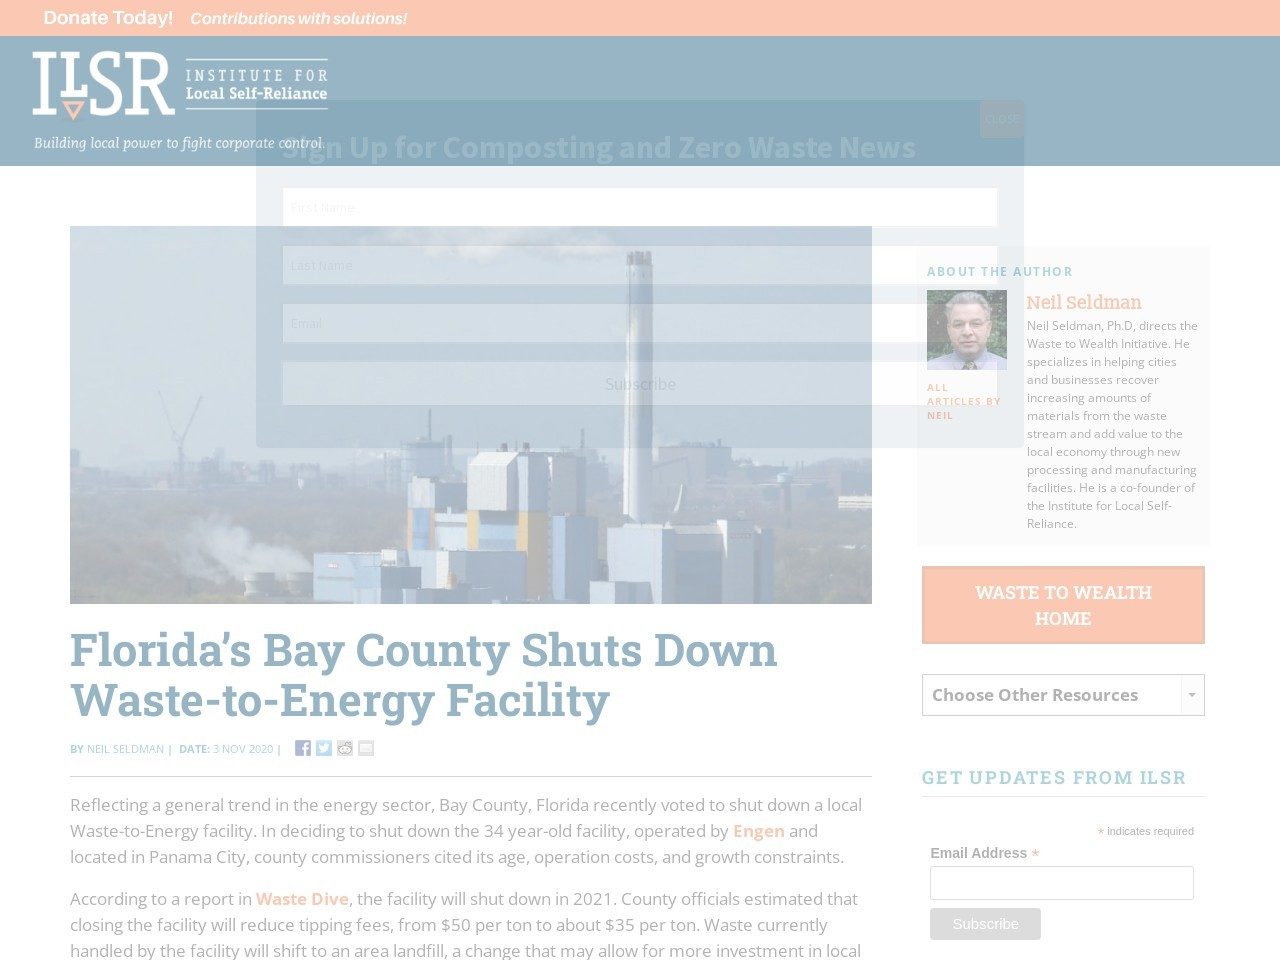 Florida's Bay County Shuts Down Waste-to-Energy Facility